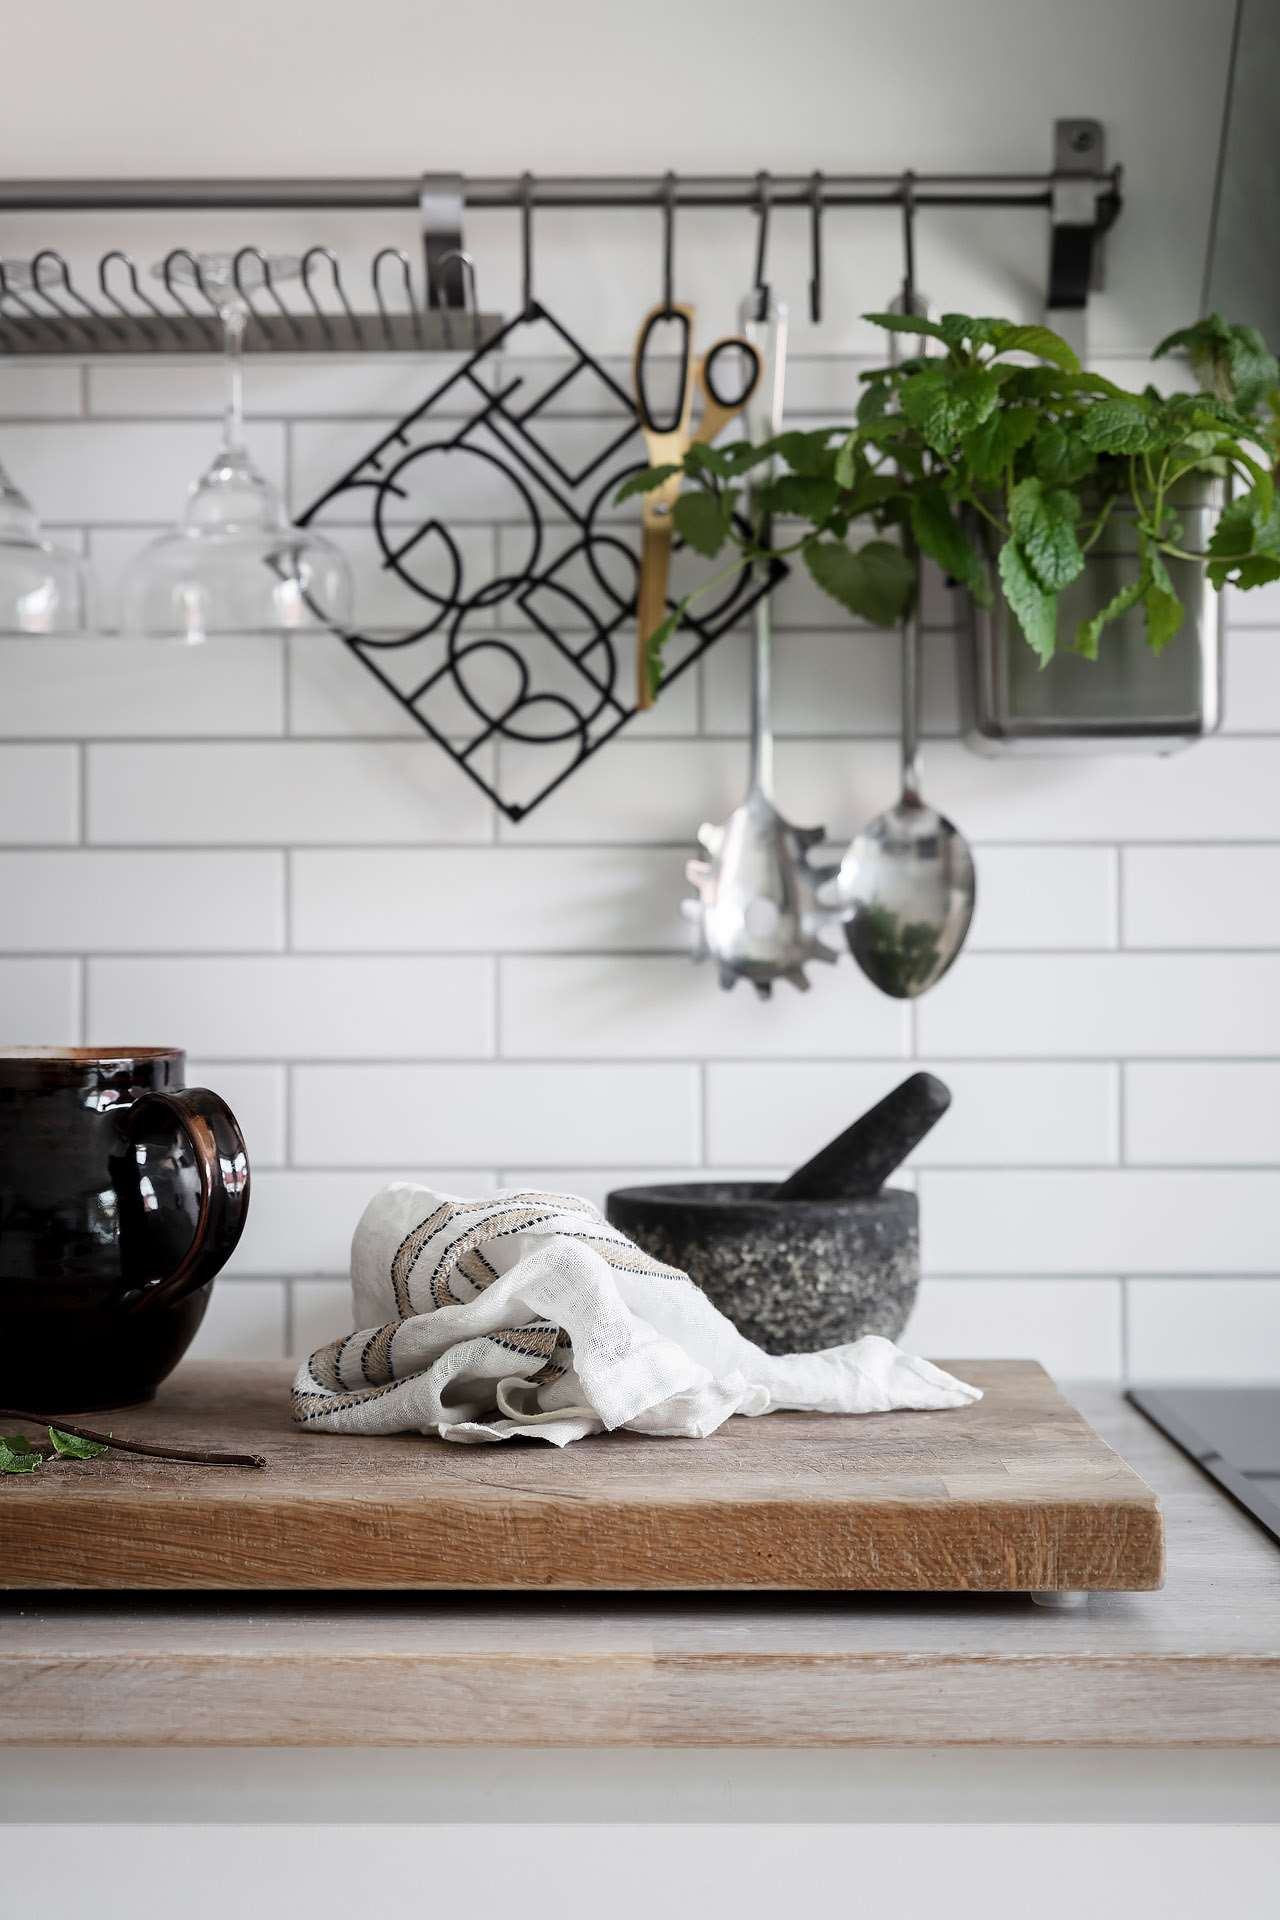 Blend Linen and stone against clean white subway tile